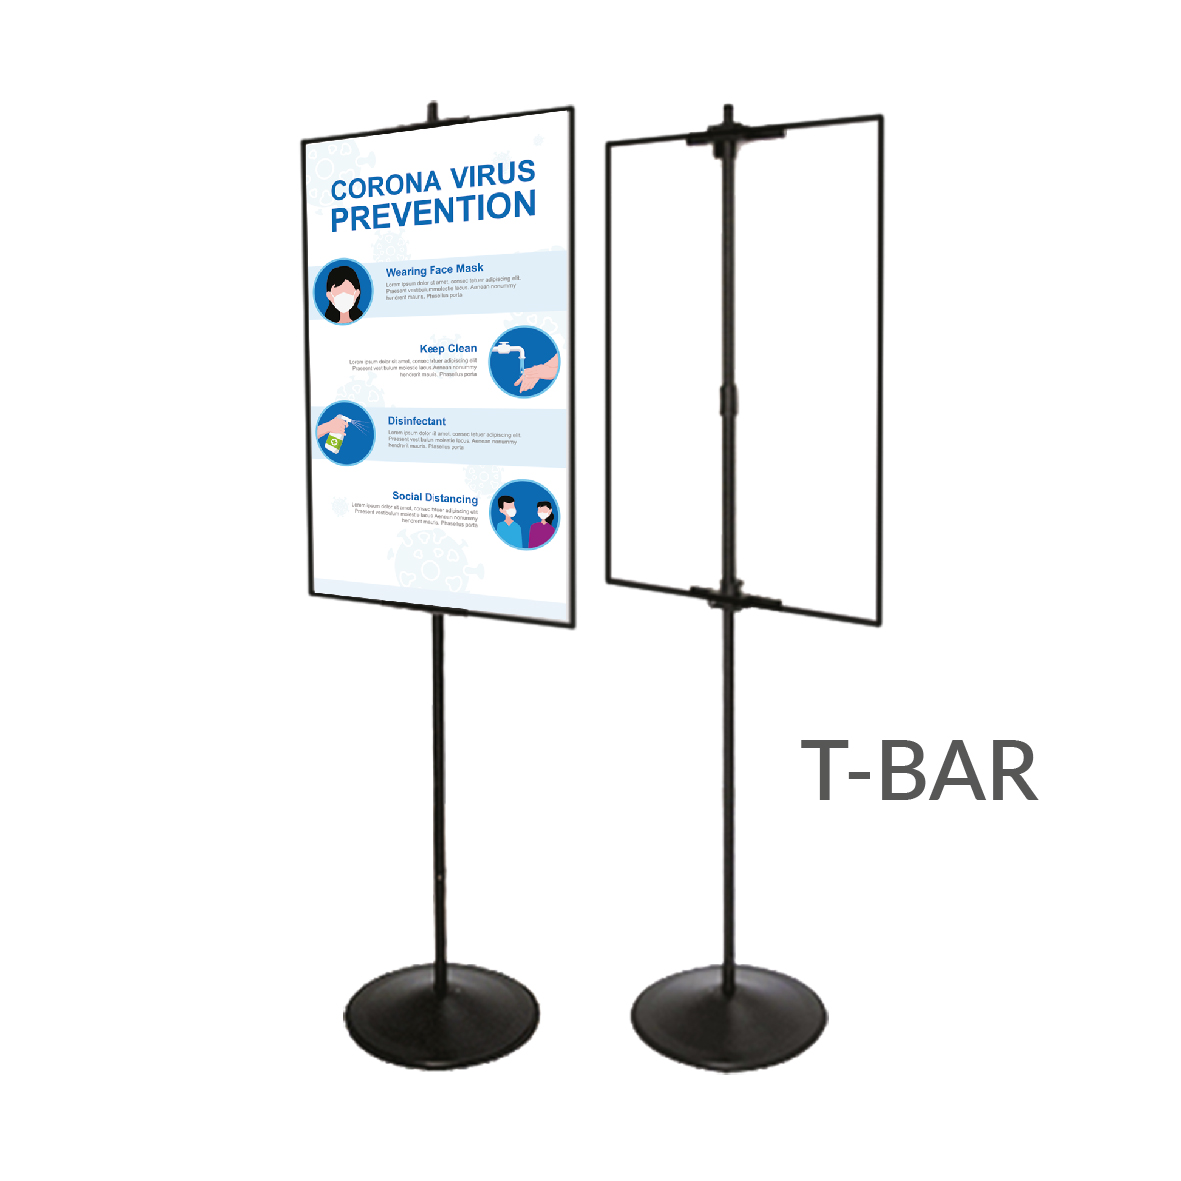 T-Bar Standees